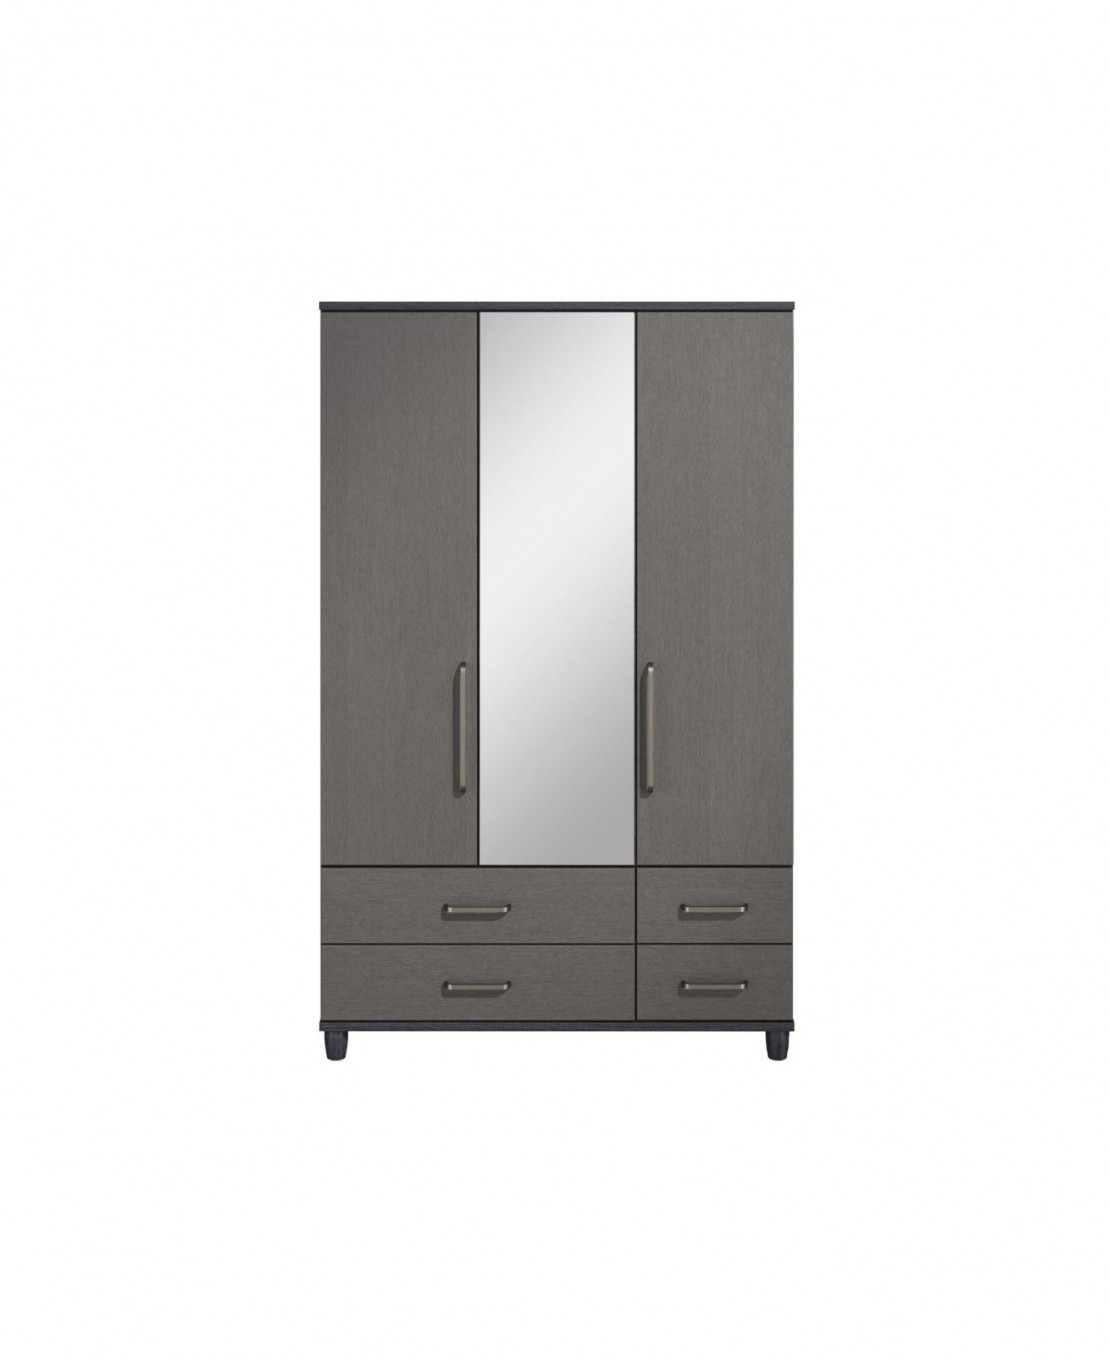 /_images/product-photos/kt-furniture-deco-3-door-centre-mirrored-gents-robe-black-oak-carcase-with-a.jpg